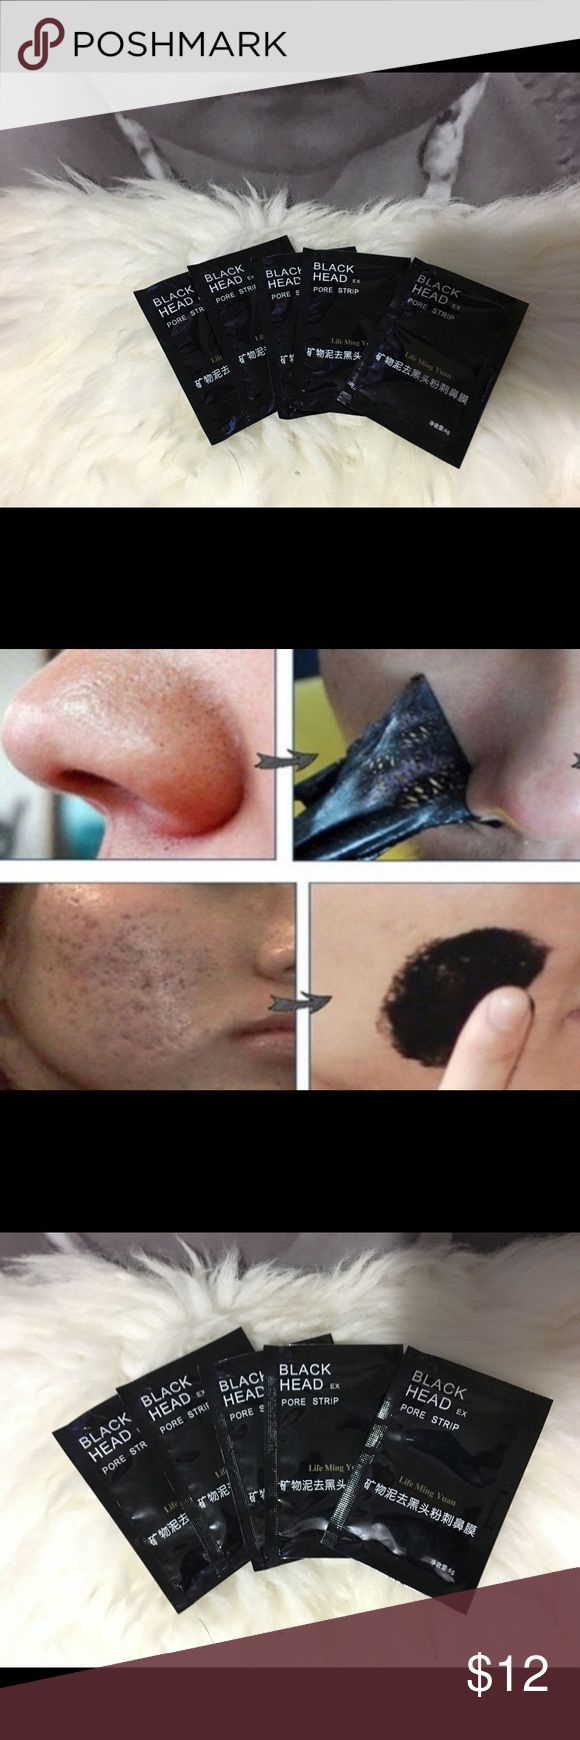 Black head pore remover 5 pieces pore strip blackhead remover.  New in package!!!  Bundle & save!!!✌🏻  Black mud for face. Makeup